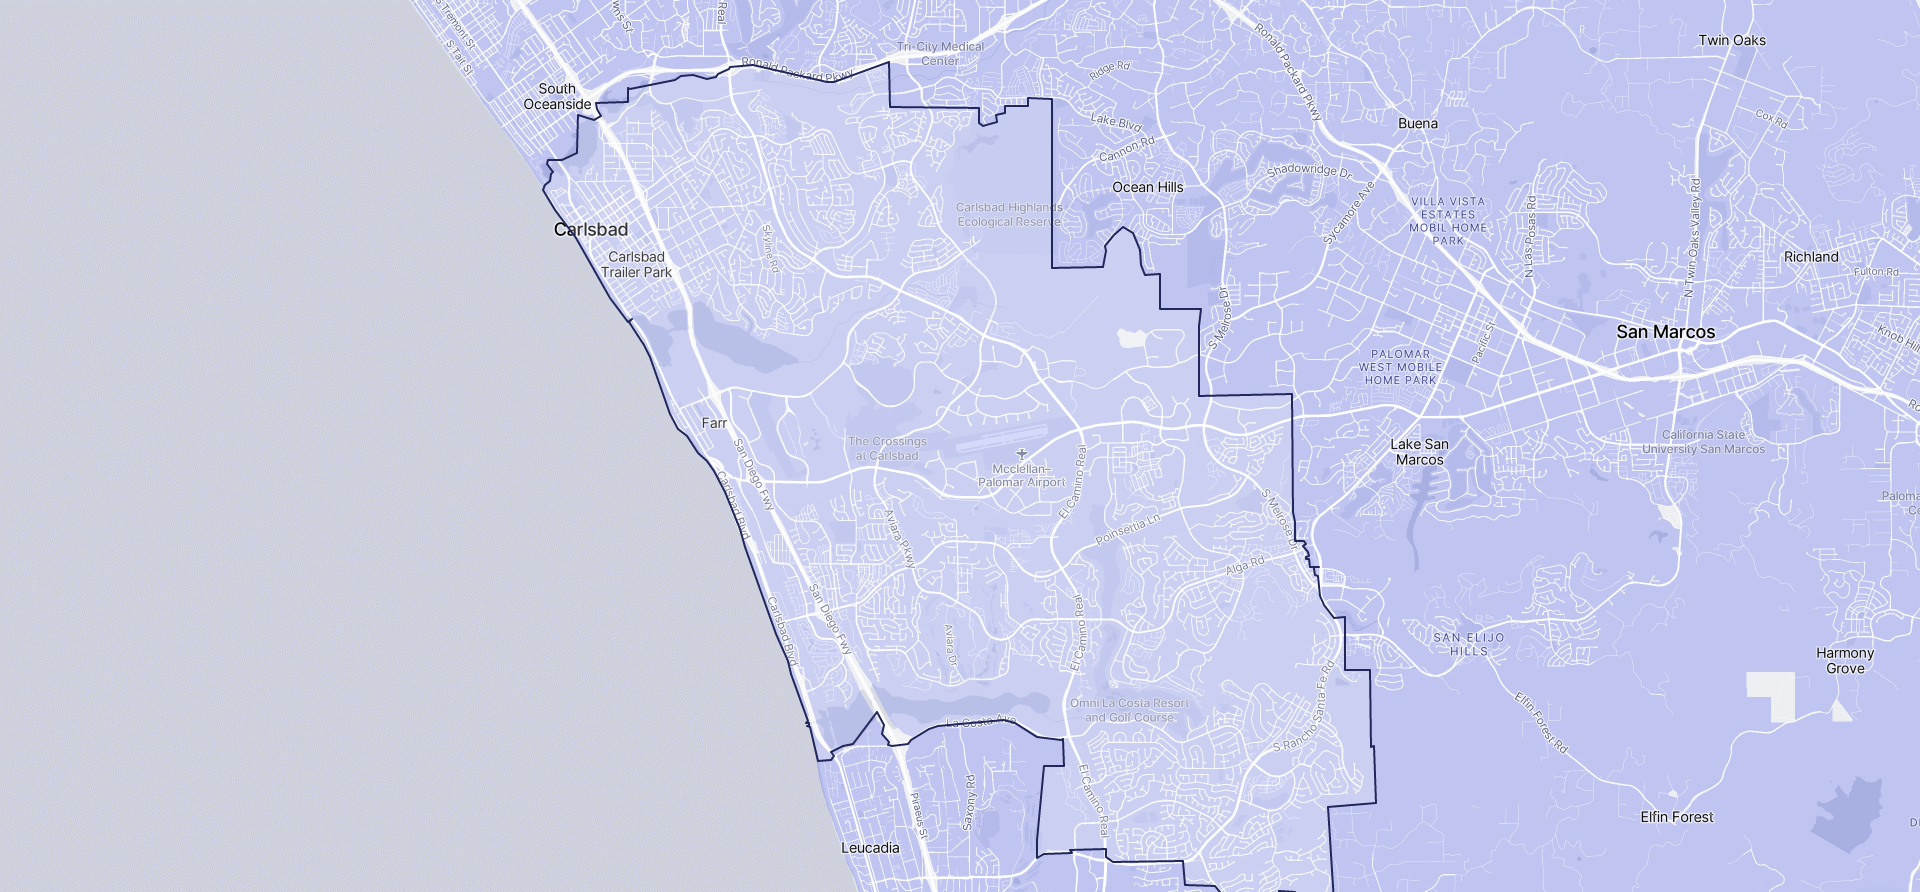 Image of Carlsbad boundaries on a map.